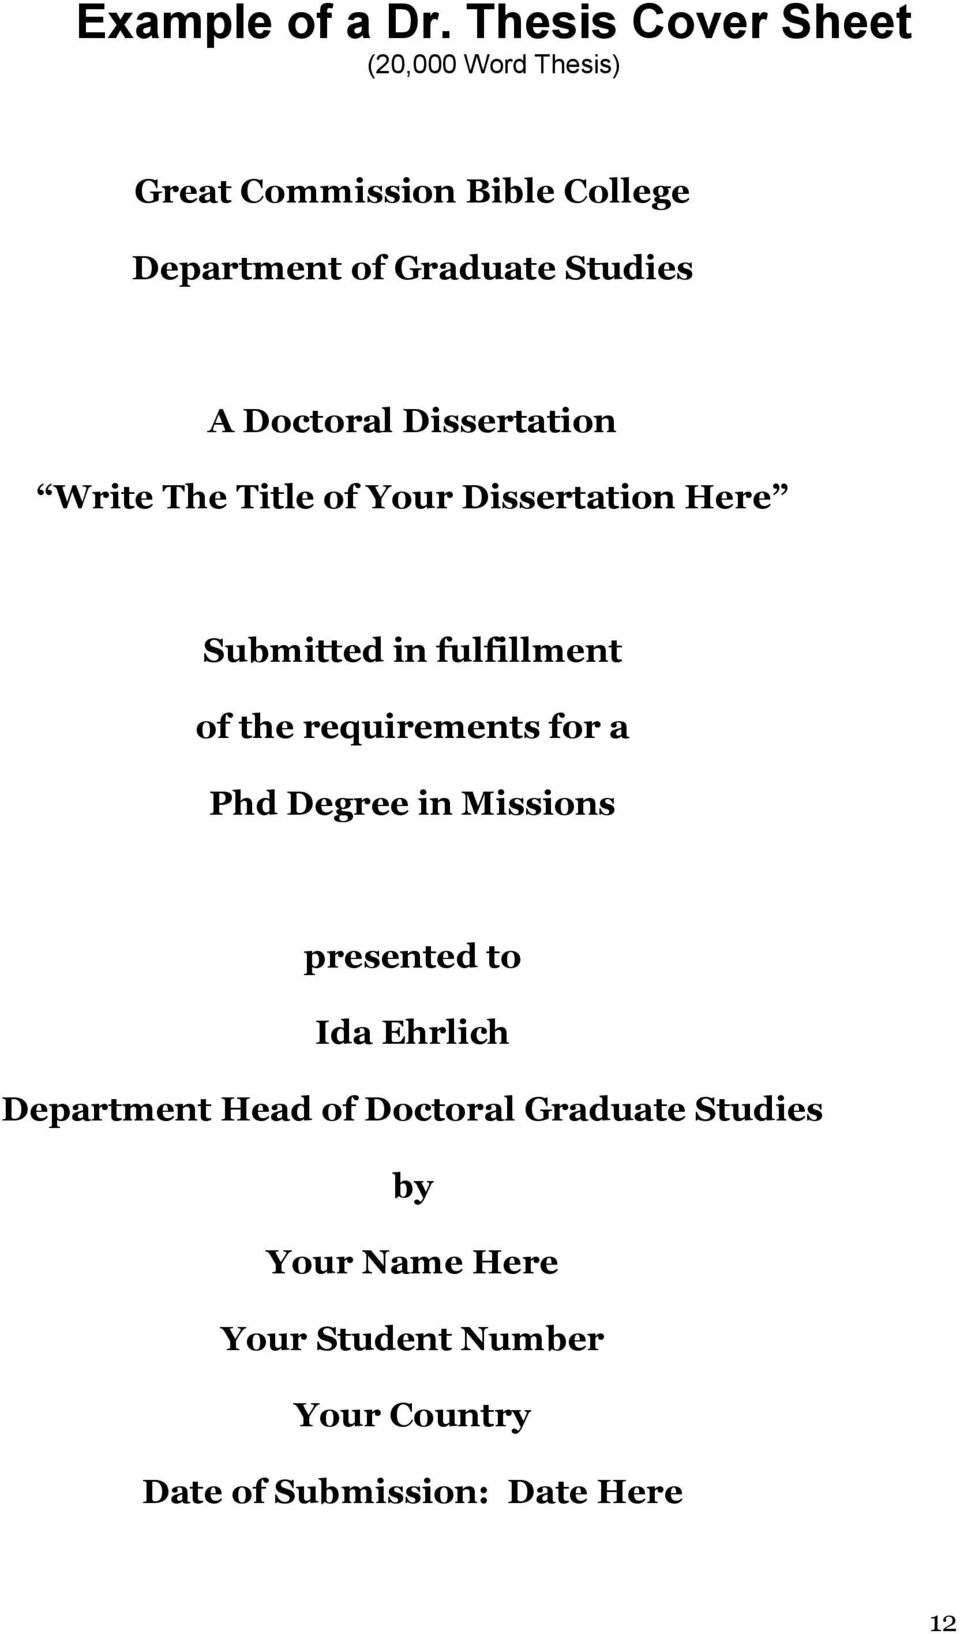 write thesis master degree Dissertation johnmueller name master degree with thesis help doing coursework phd thesis on derivatives.